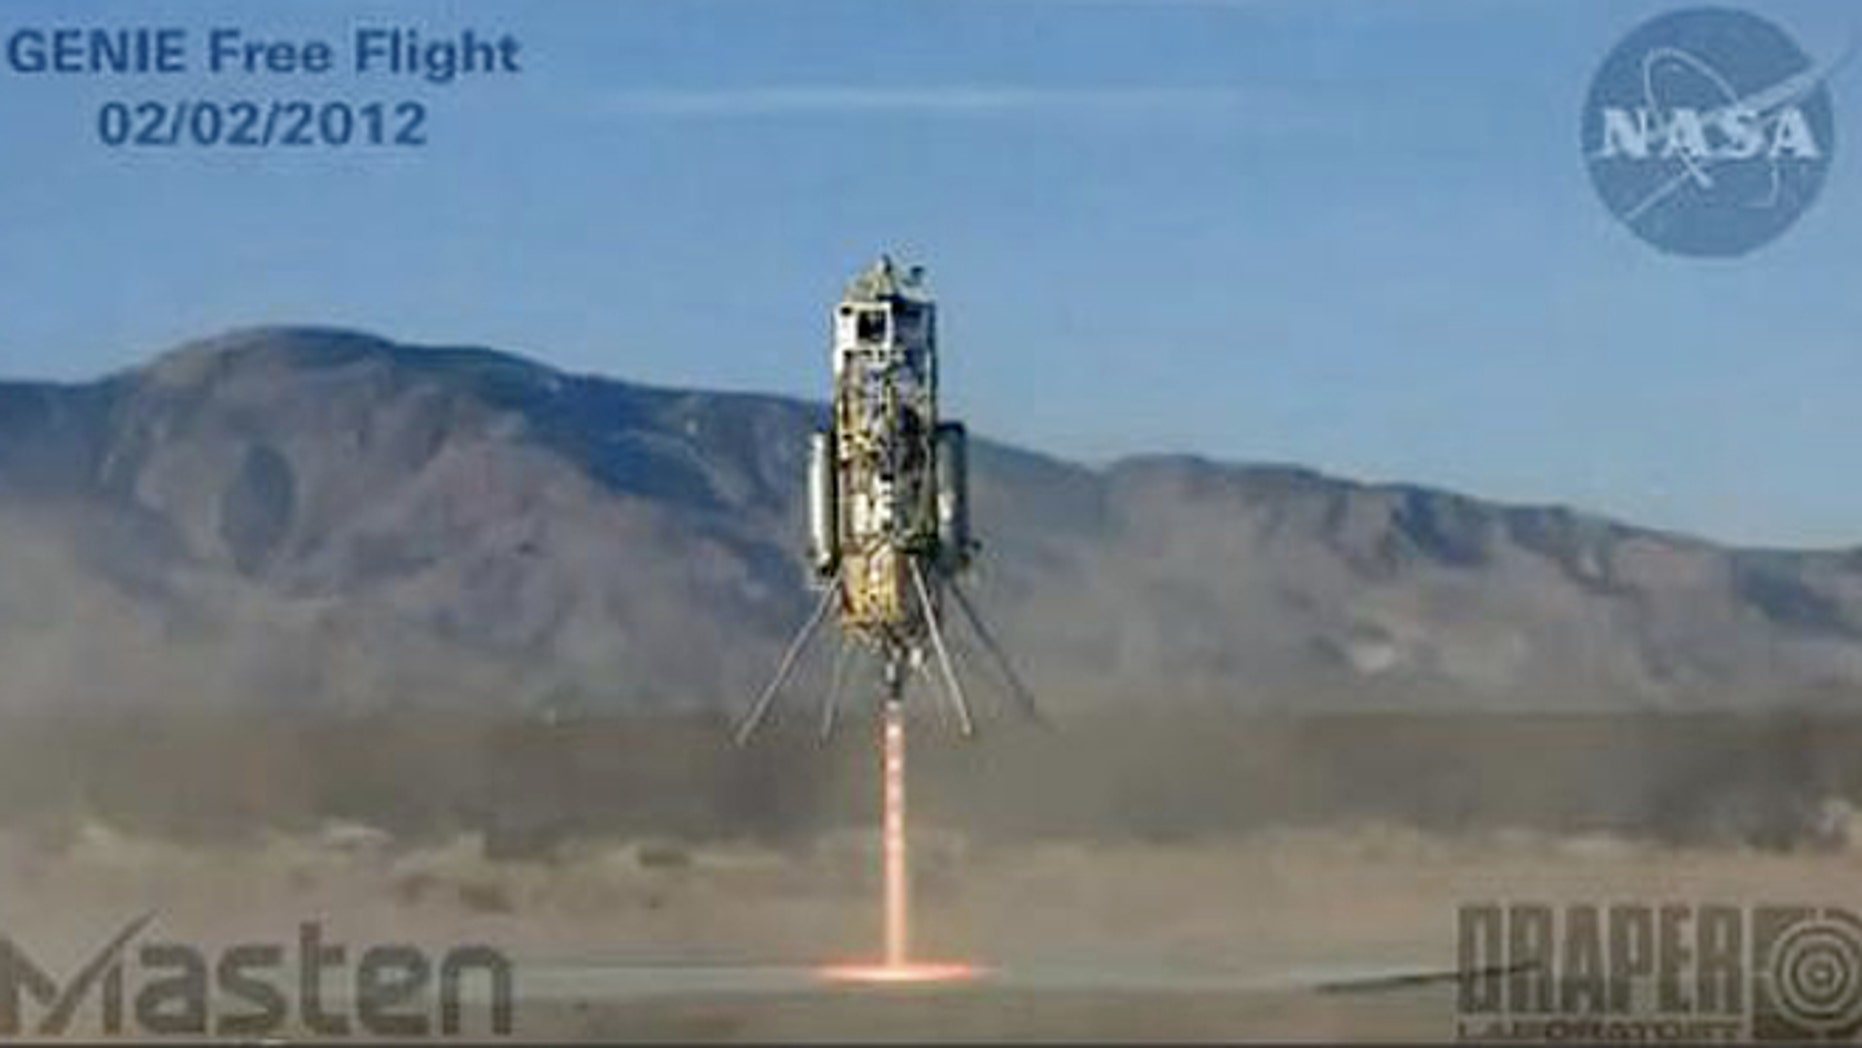 Masten Space Systems' Xombie rocket blasts off on Feb. 2, 2012, on a brief flight to demonstrate new control software.